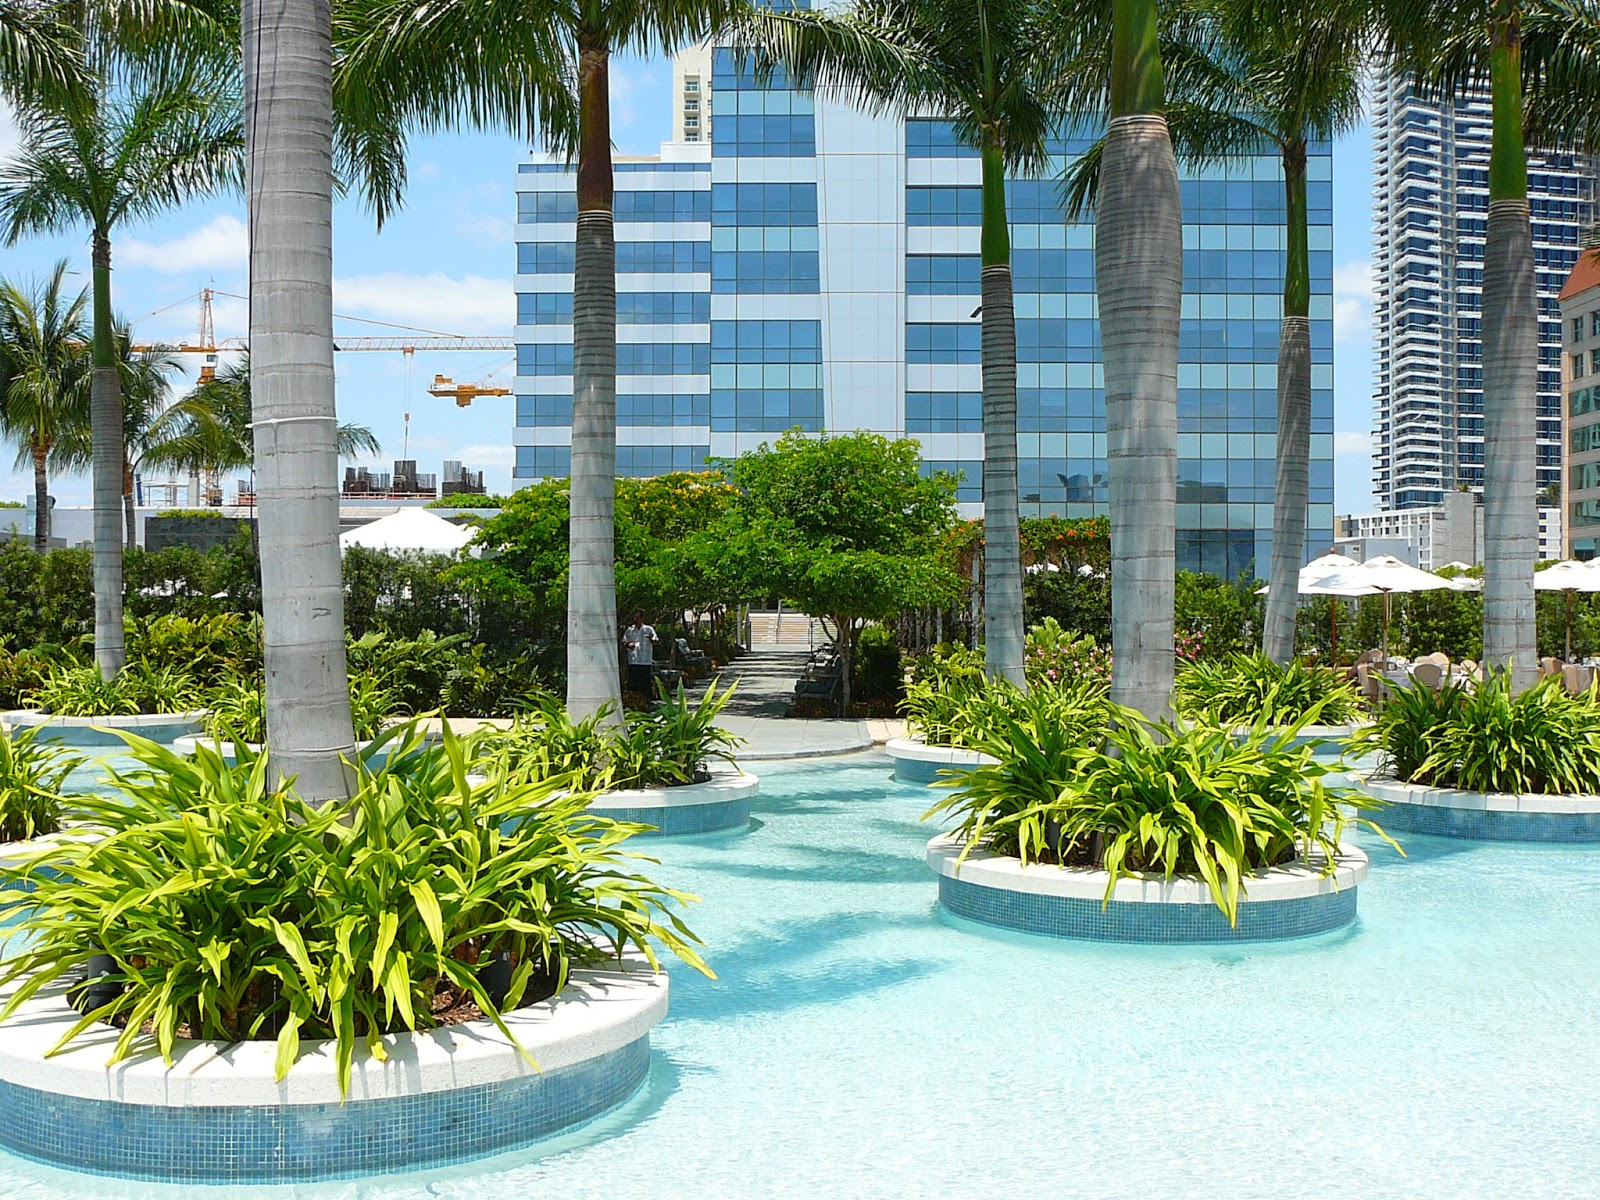 Miami Tourism  Miami Attractions  Miami Hotels